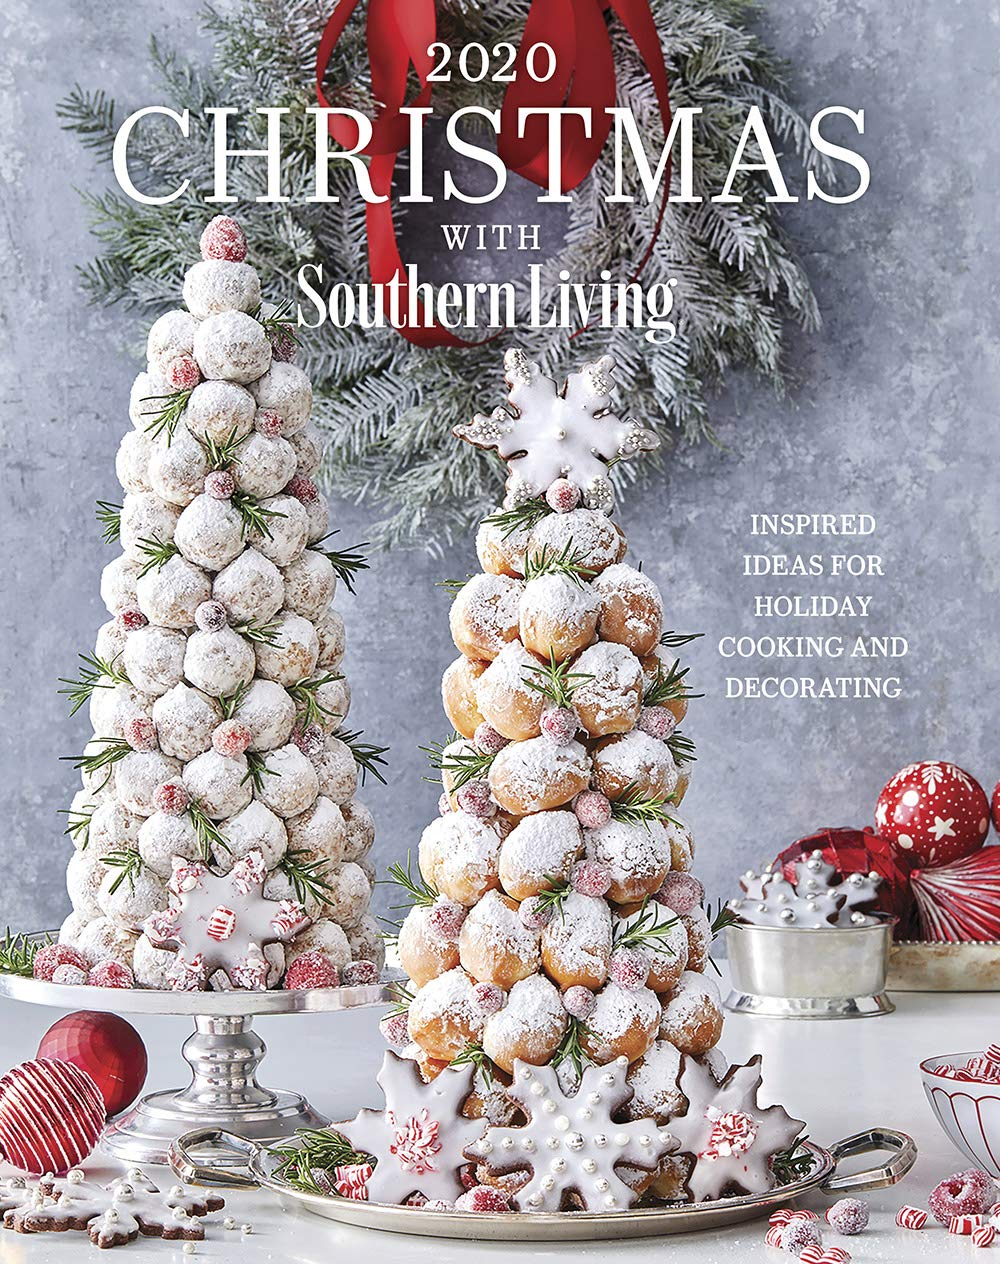 Christmas Recipes 2020 2020 Christmas with Southern Living: Inspired Ideas for Holiday